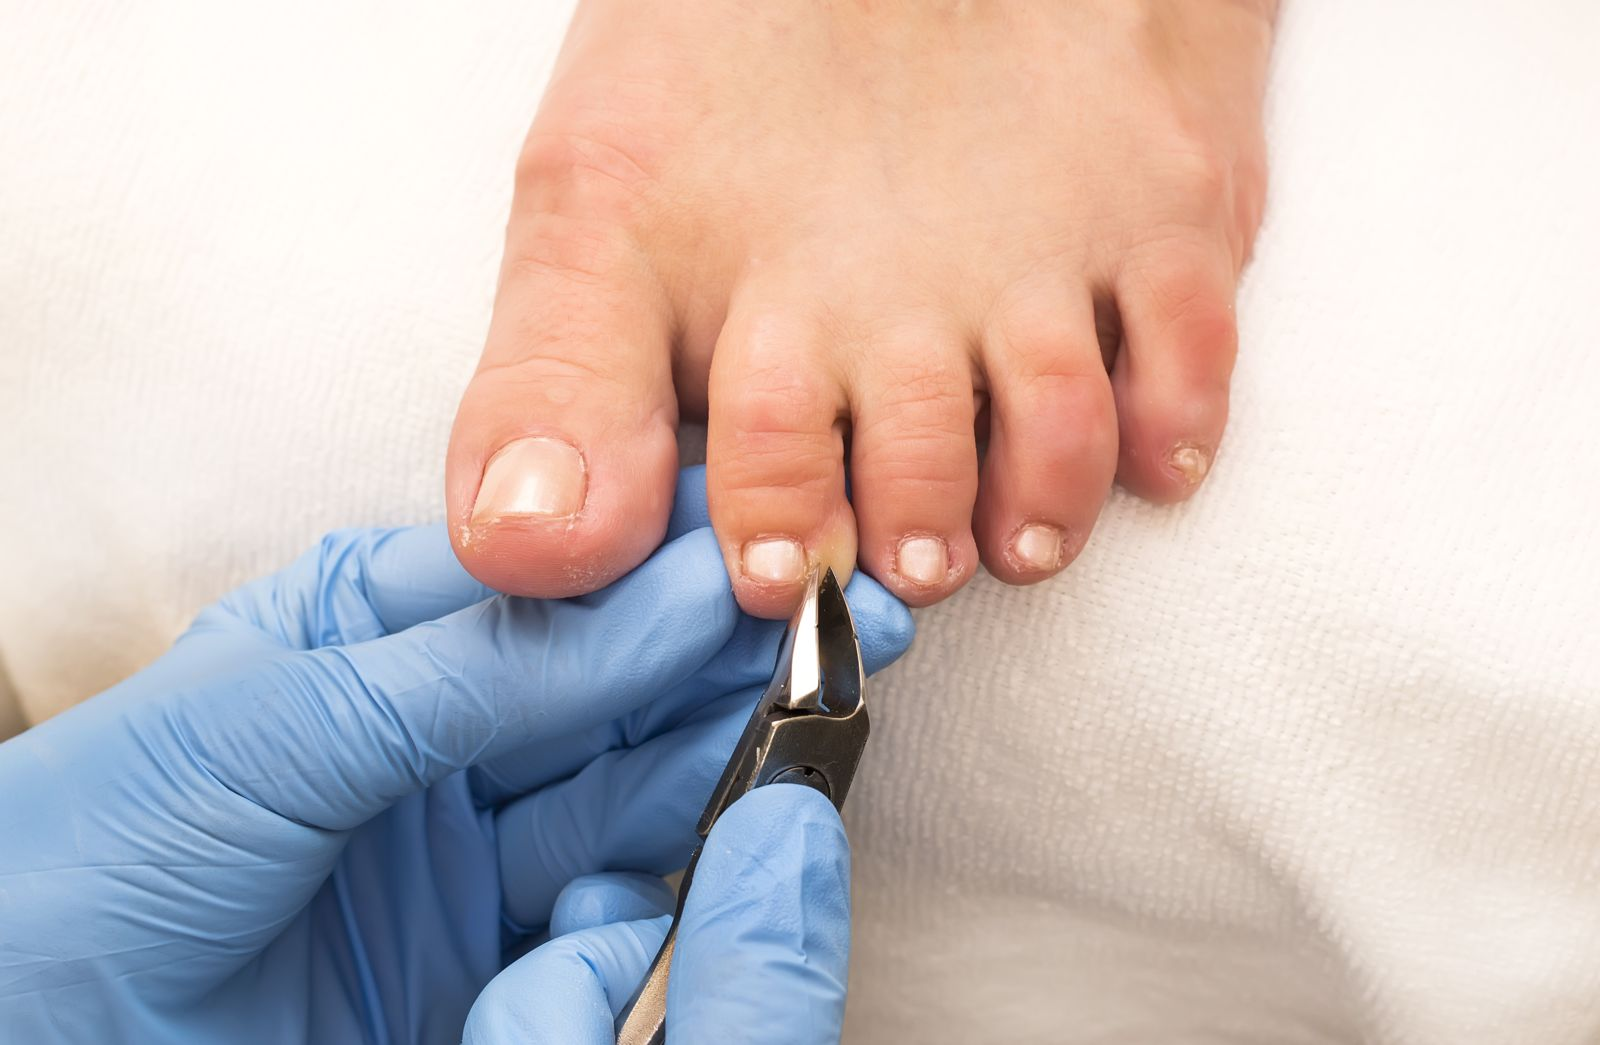 close up of medically gloved hands using a tool to nip the edge of a toenail